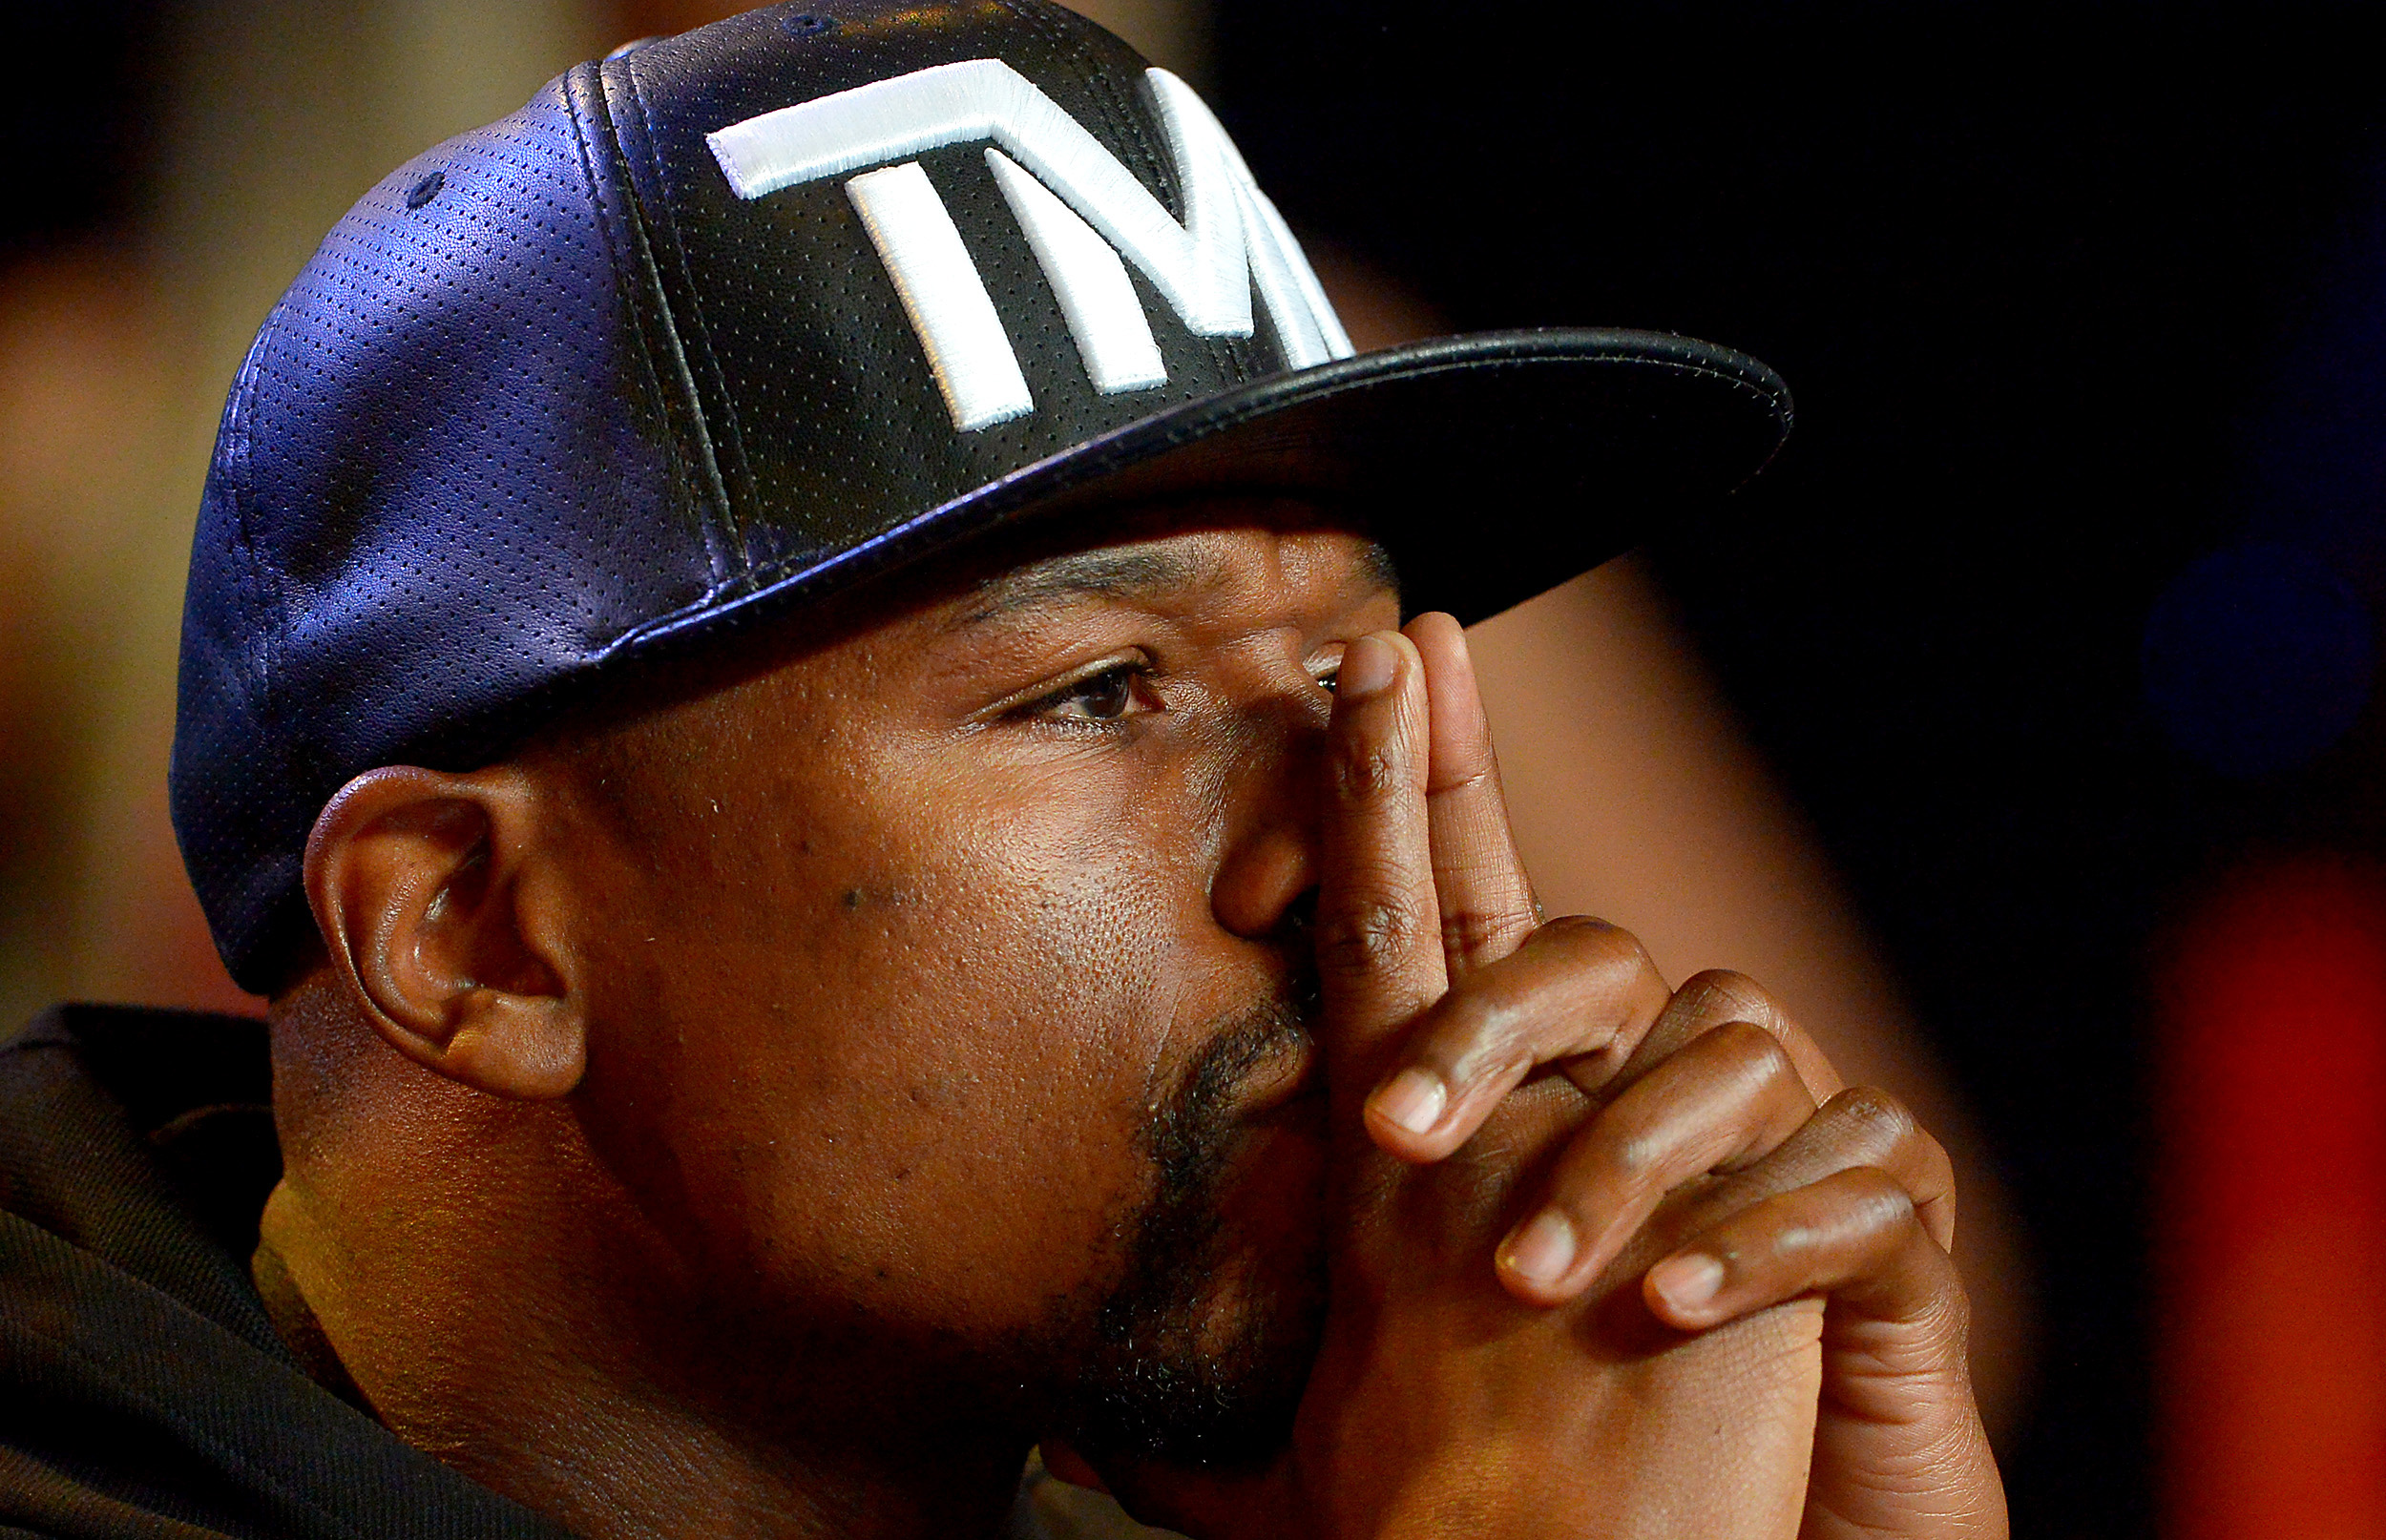 It's cruel to laugh at Floyd Mayweather's reading problems